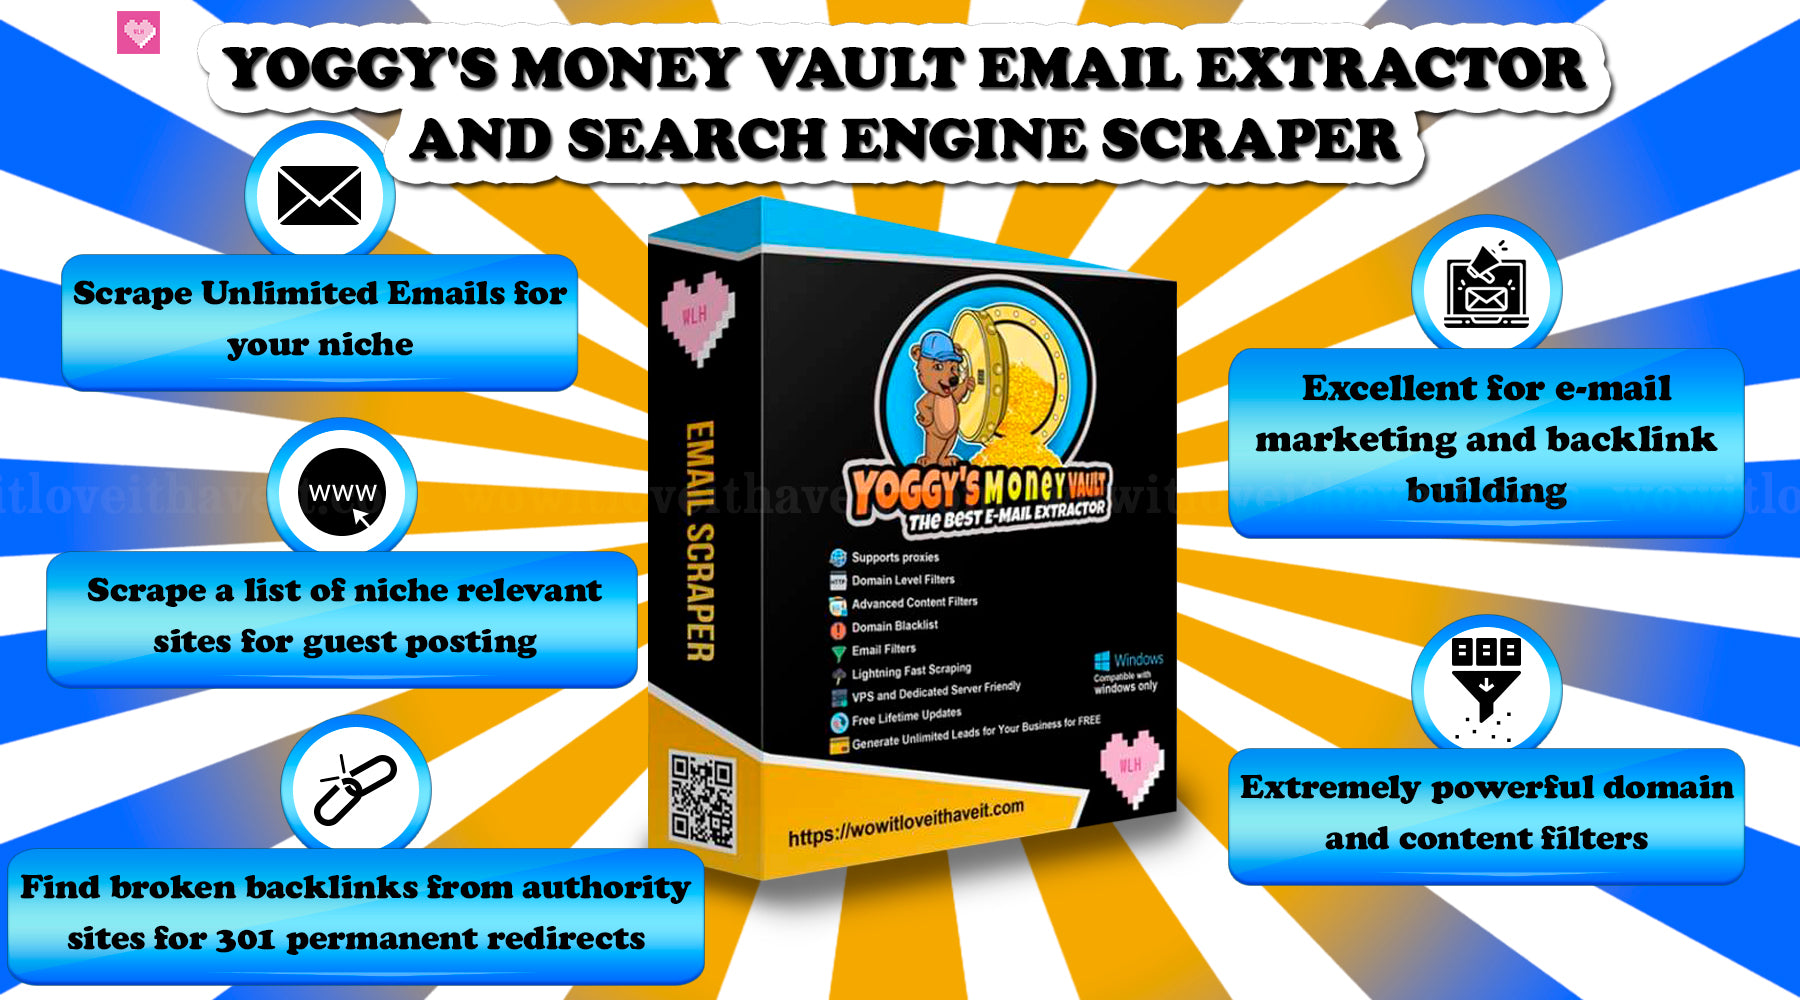 Yoggy's Money Vault Search Engine Scraper and Email Extractor